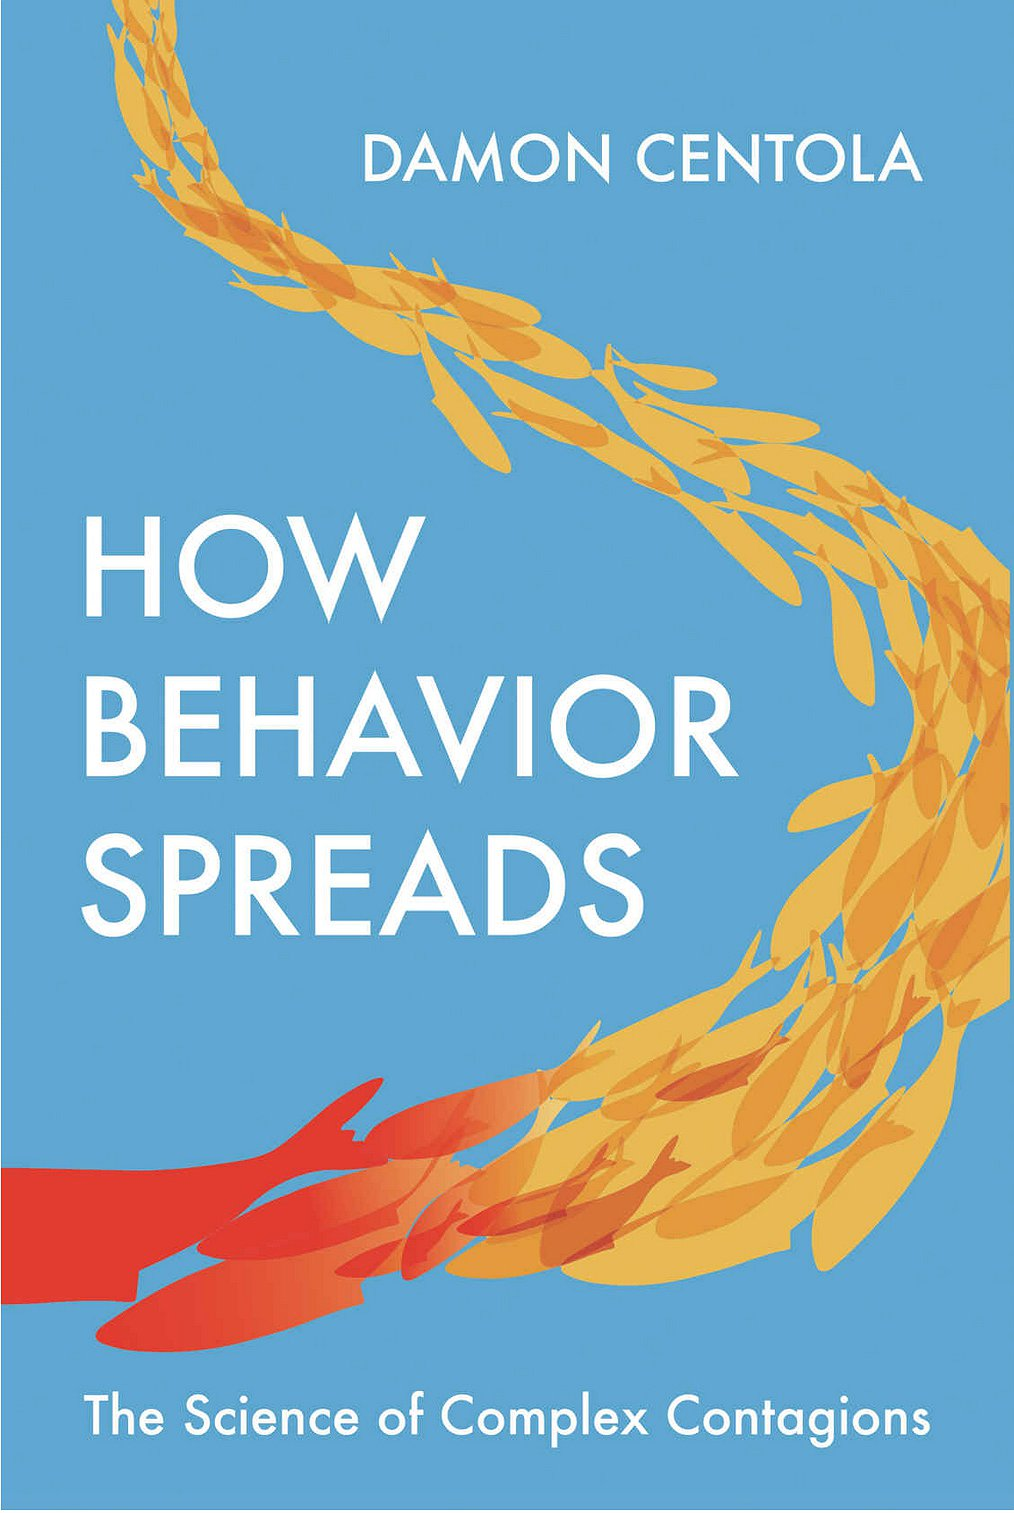 How Behavior Spreads: The Science of Complex Contagions